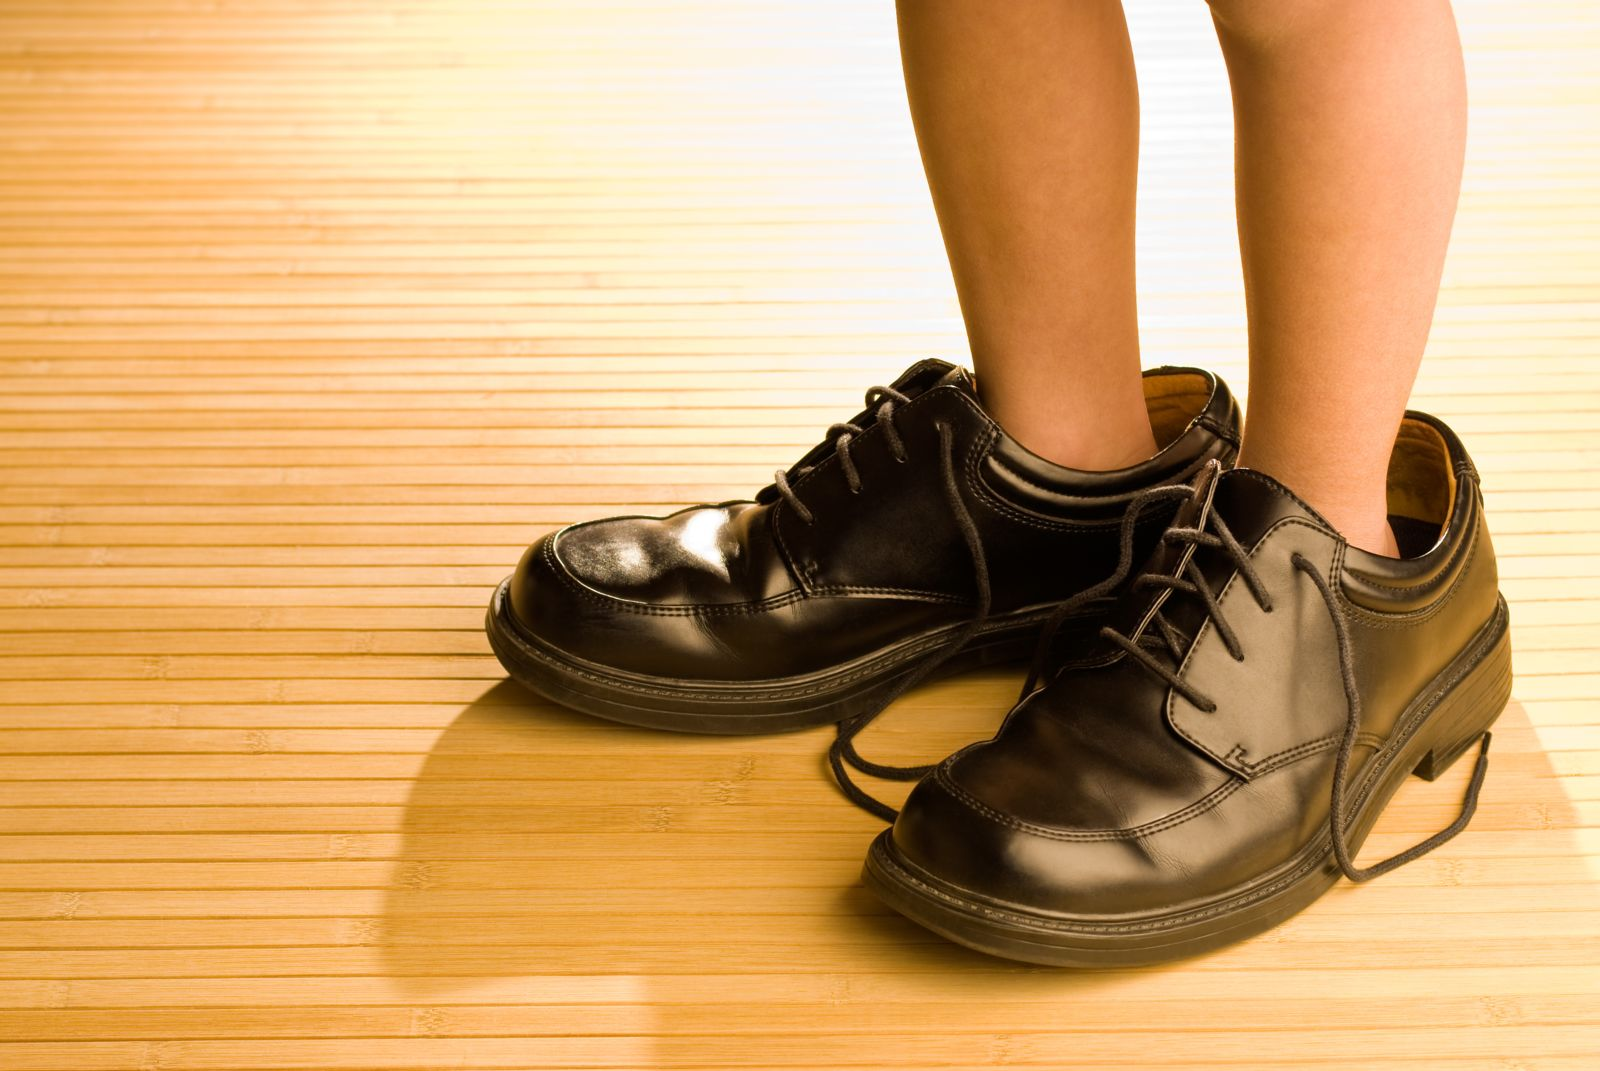 Shoes that are too big can also put pressure on your feet and lead to bone spurs.